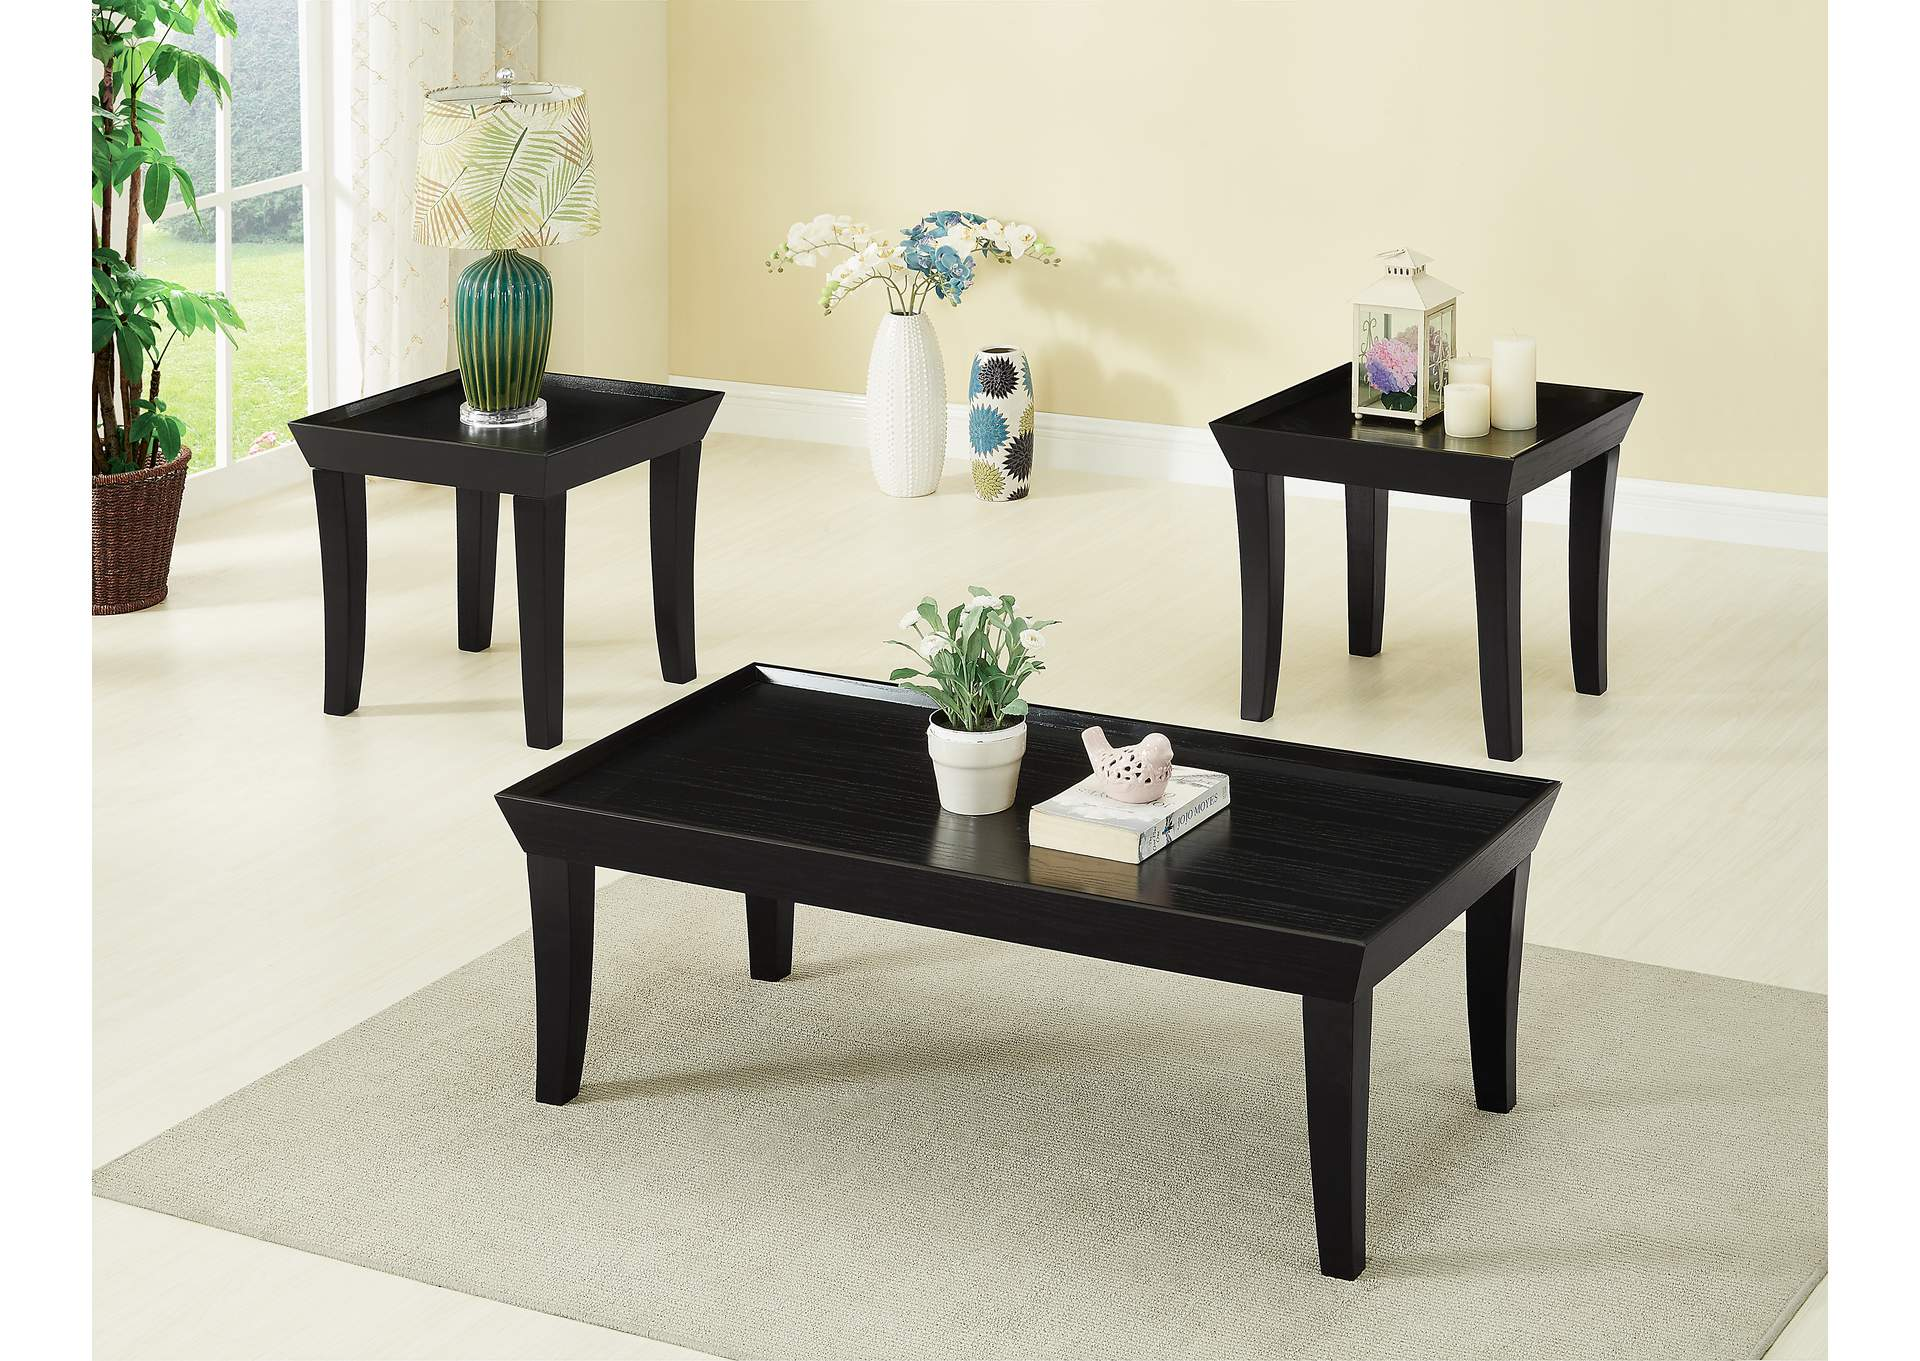 Black 3 Piece Cocktail & End Table Set,Global Trading